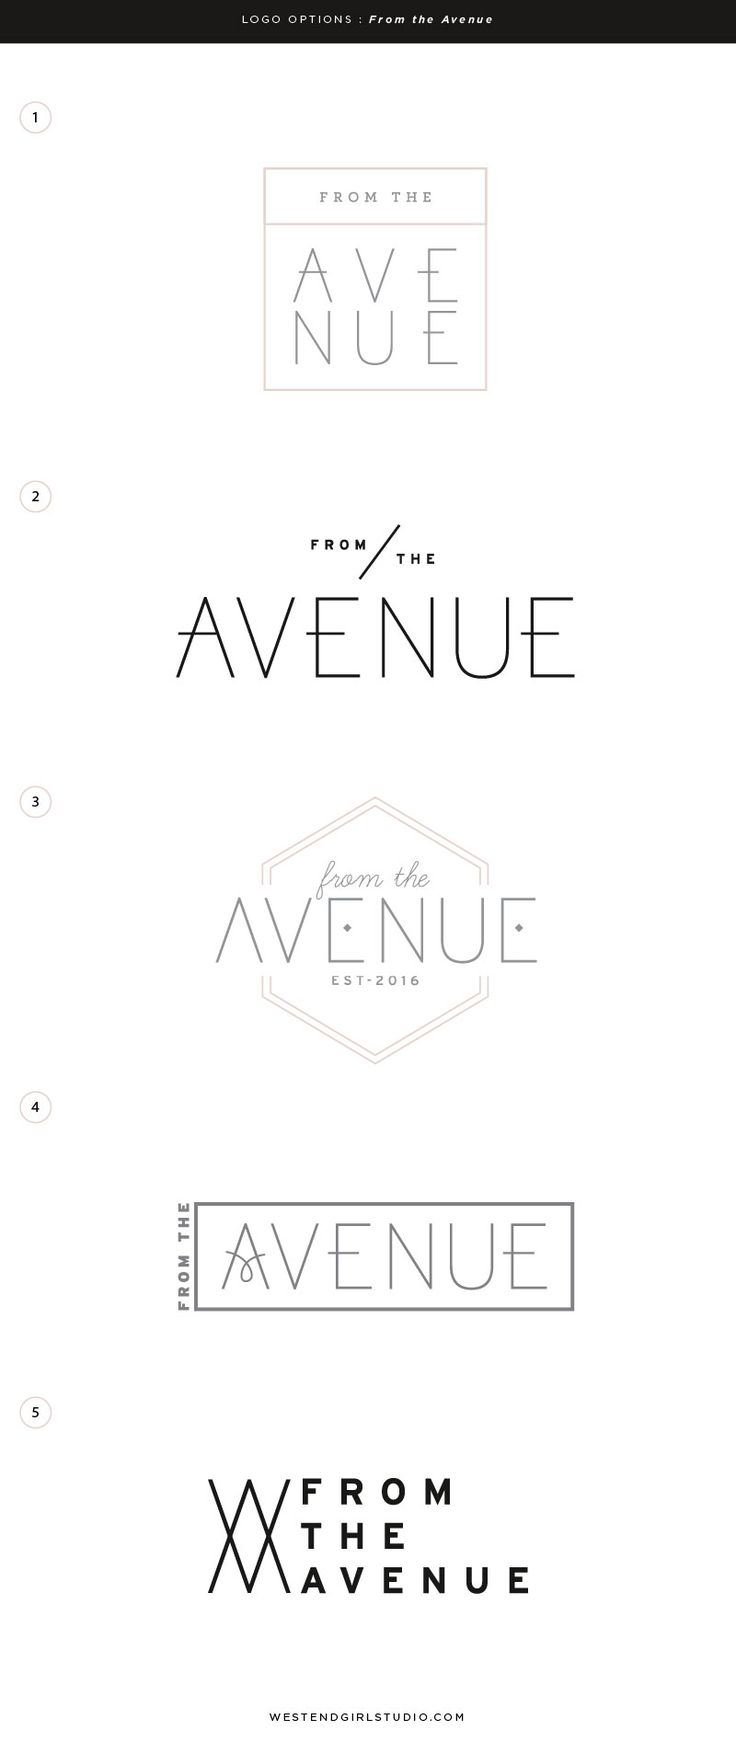 logo options for baby maternity company, Scandinavian design, maternity brand, modern logo, branding